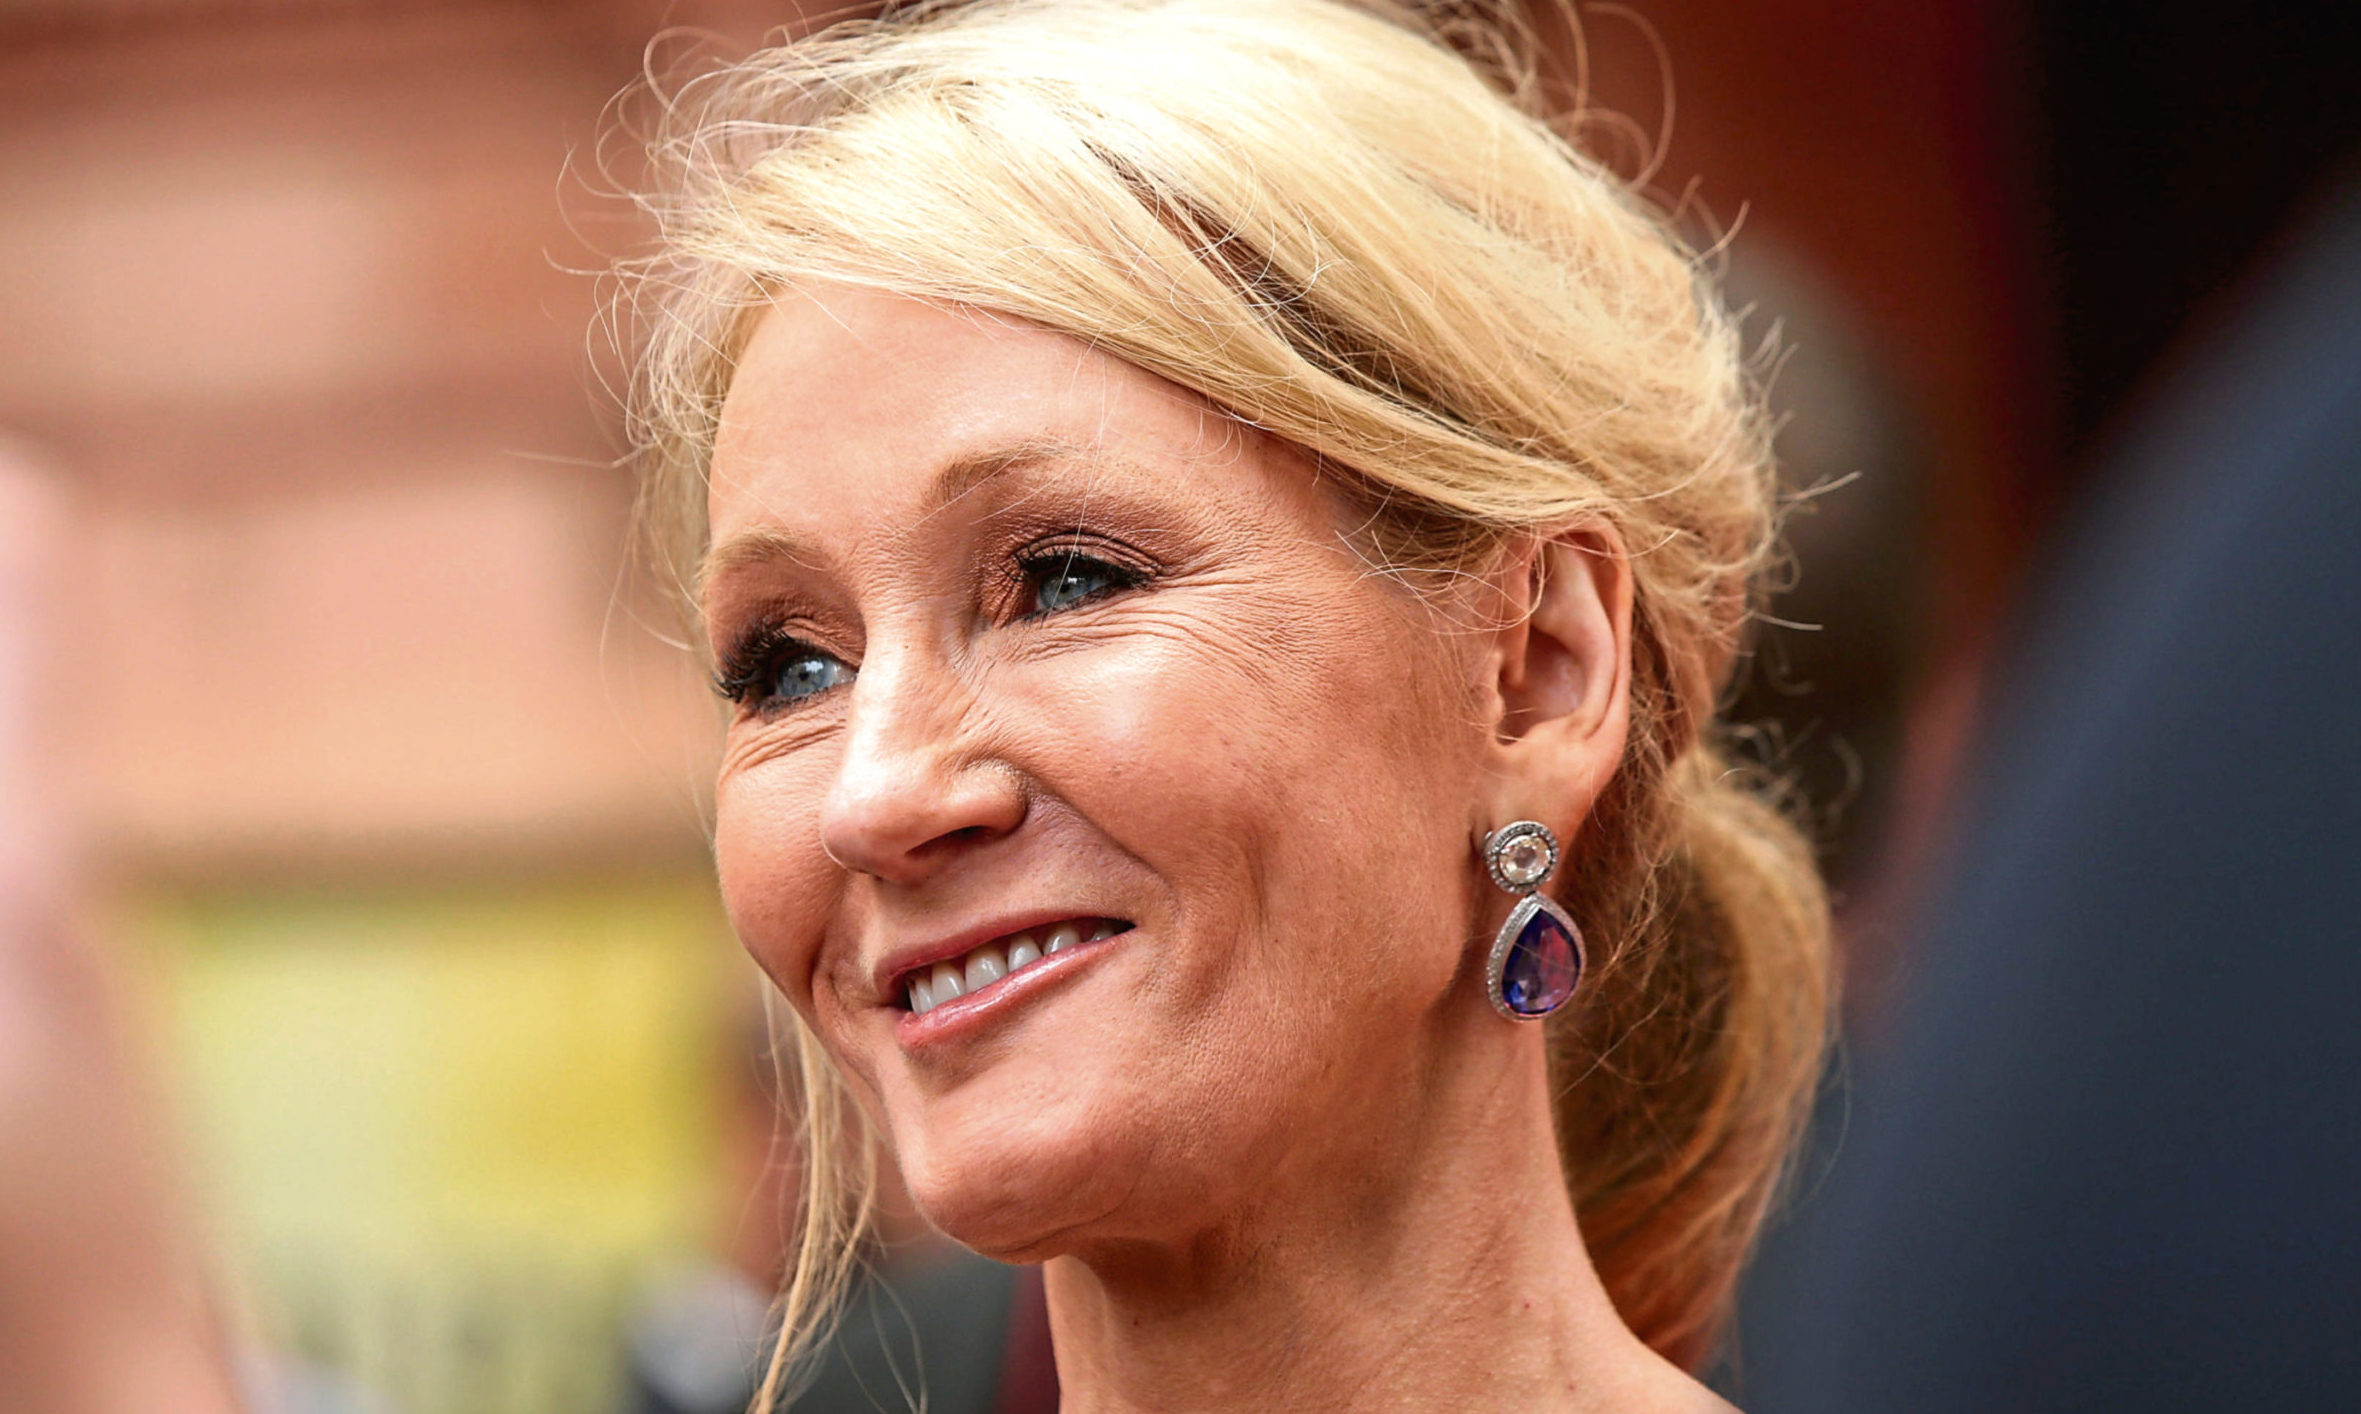 JK Rowling's comments on transgender rights could be classified as a hate crime, Jenny Hjul argues.